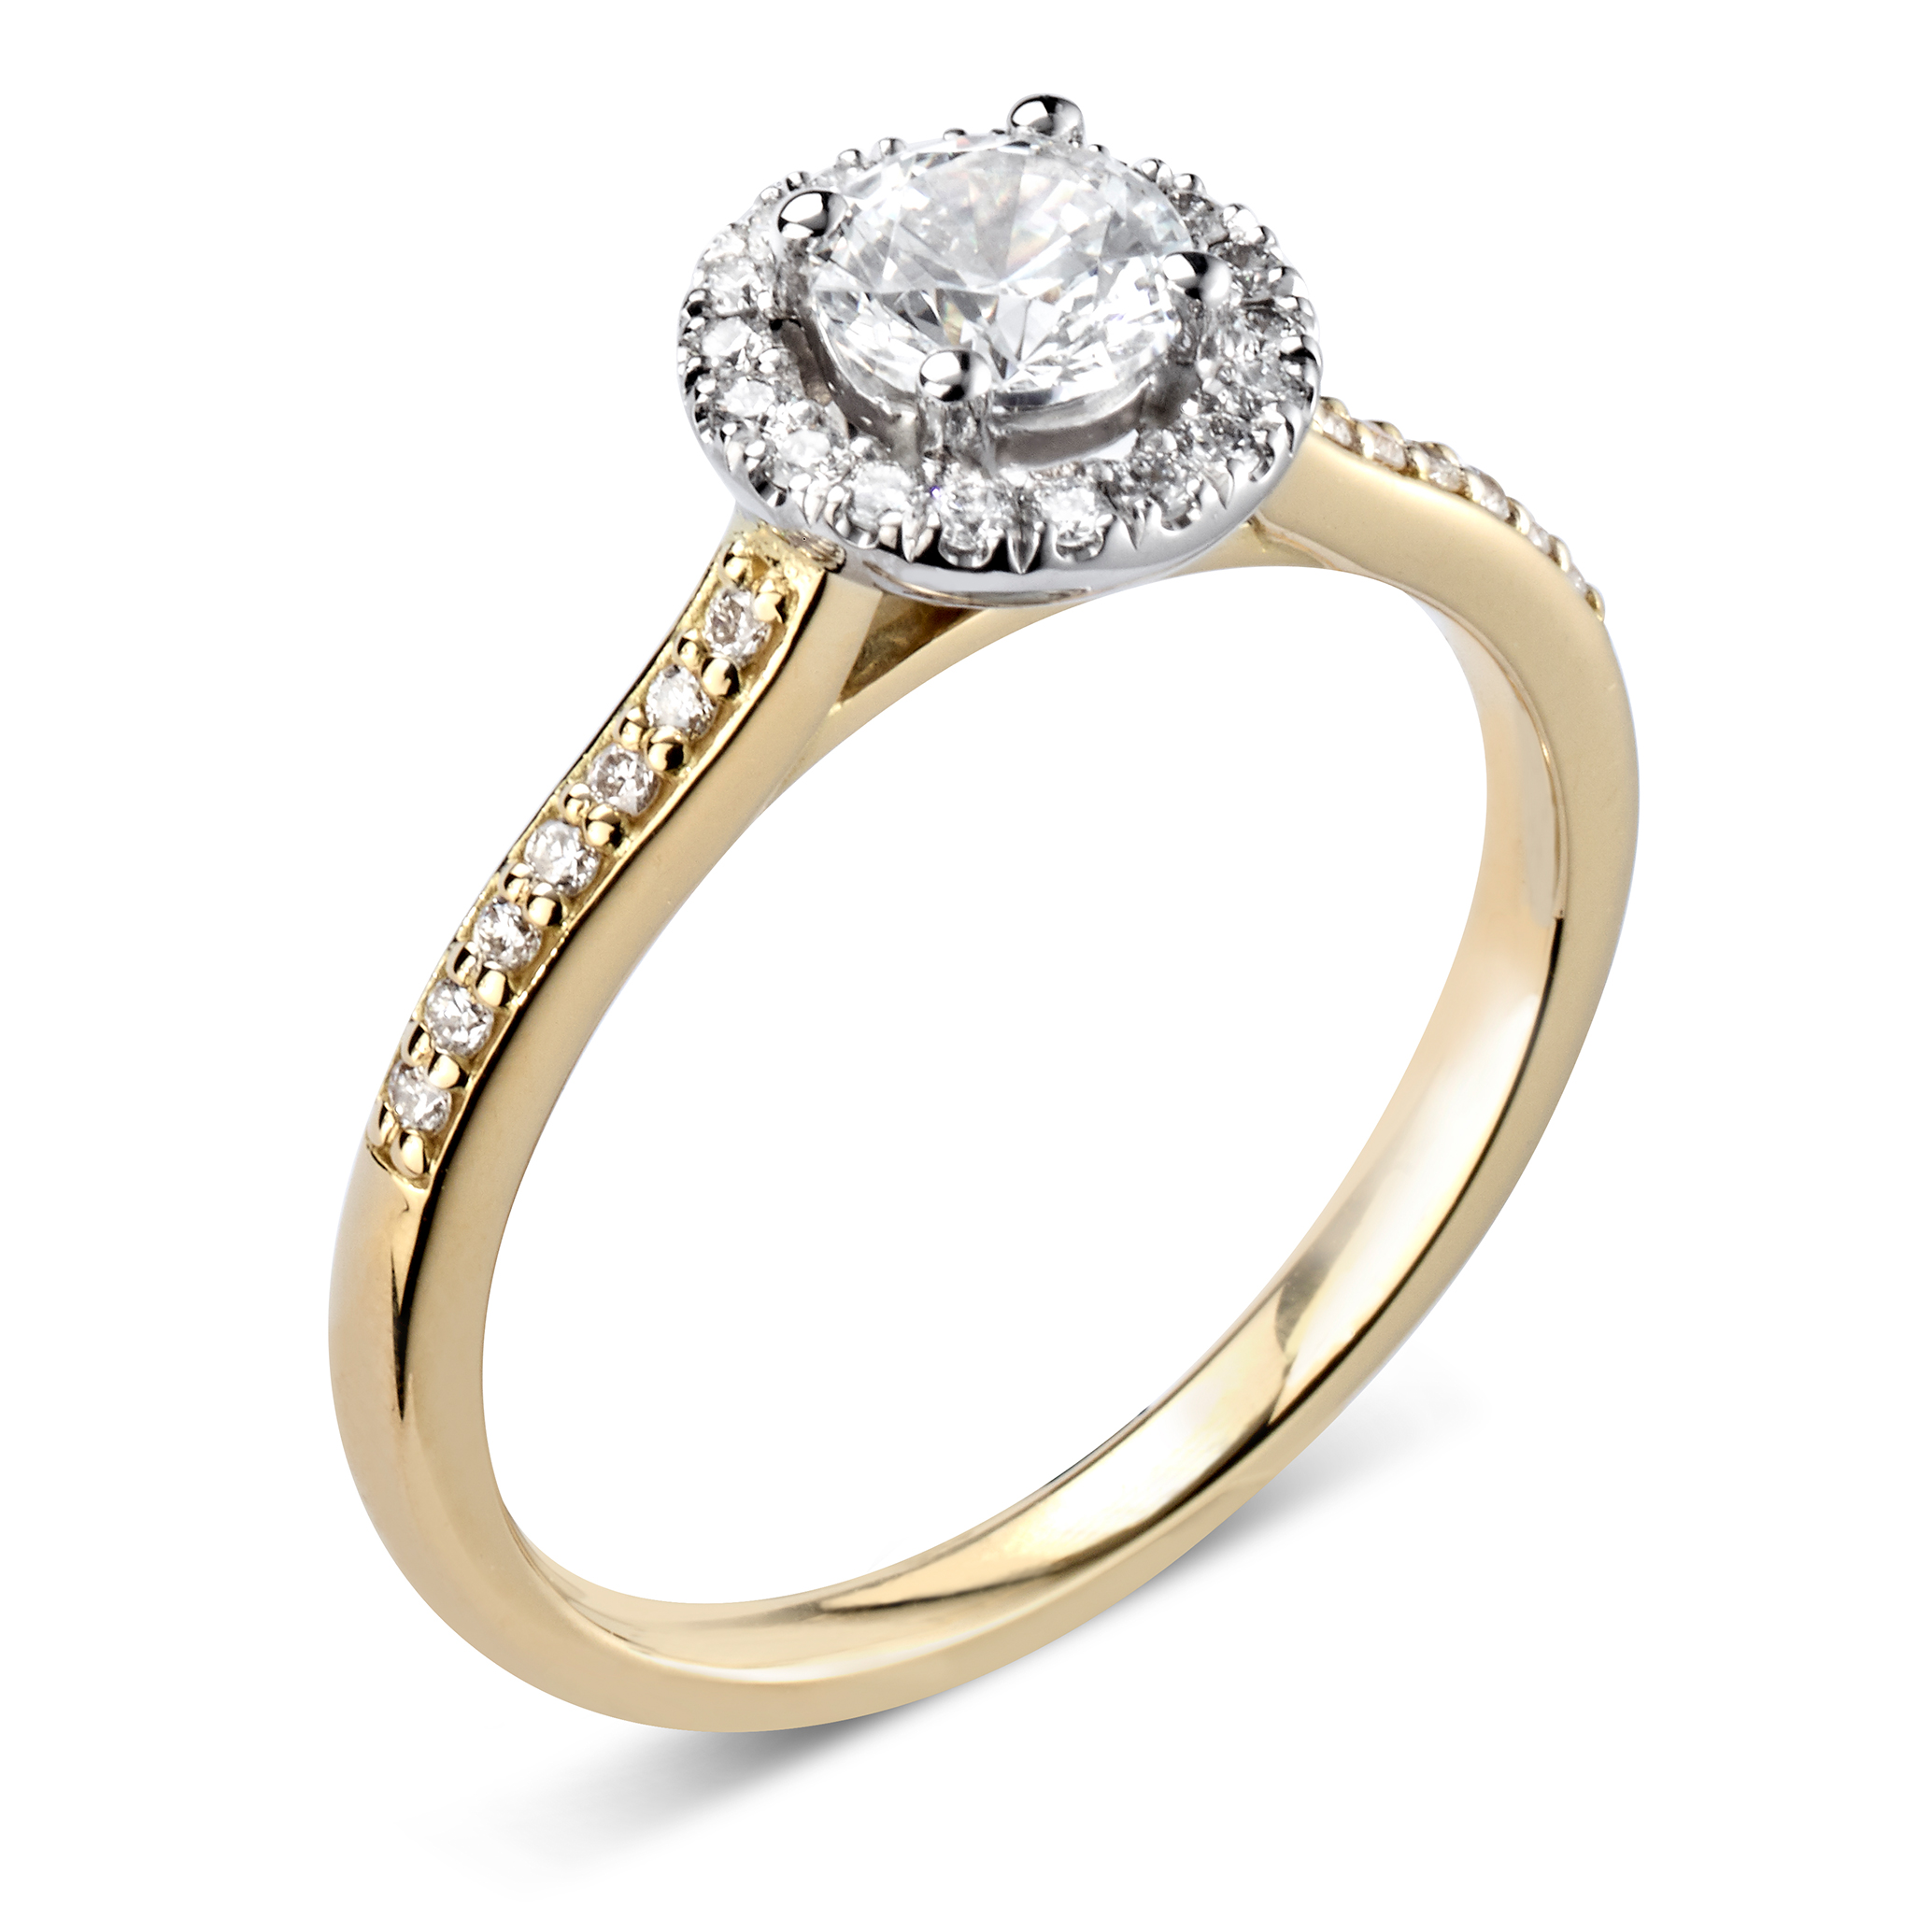 790099b03 Engagement Rings Ireland | Engagement Rings For Sale | Wehrly's ...